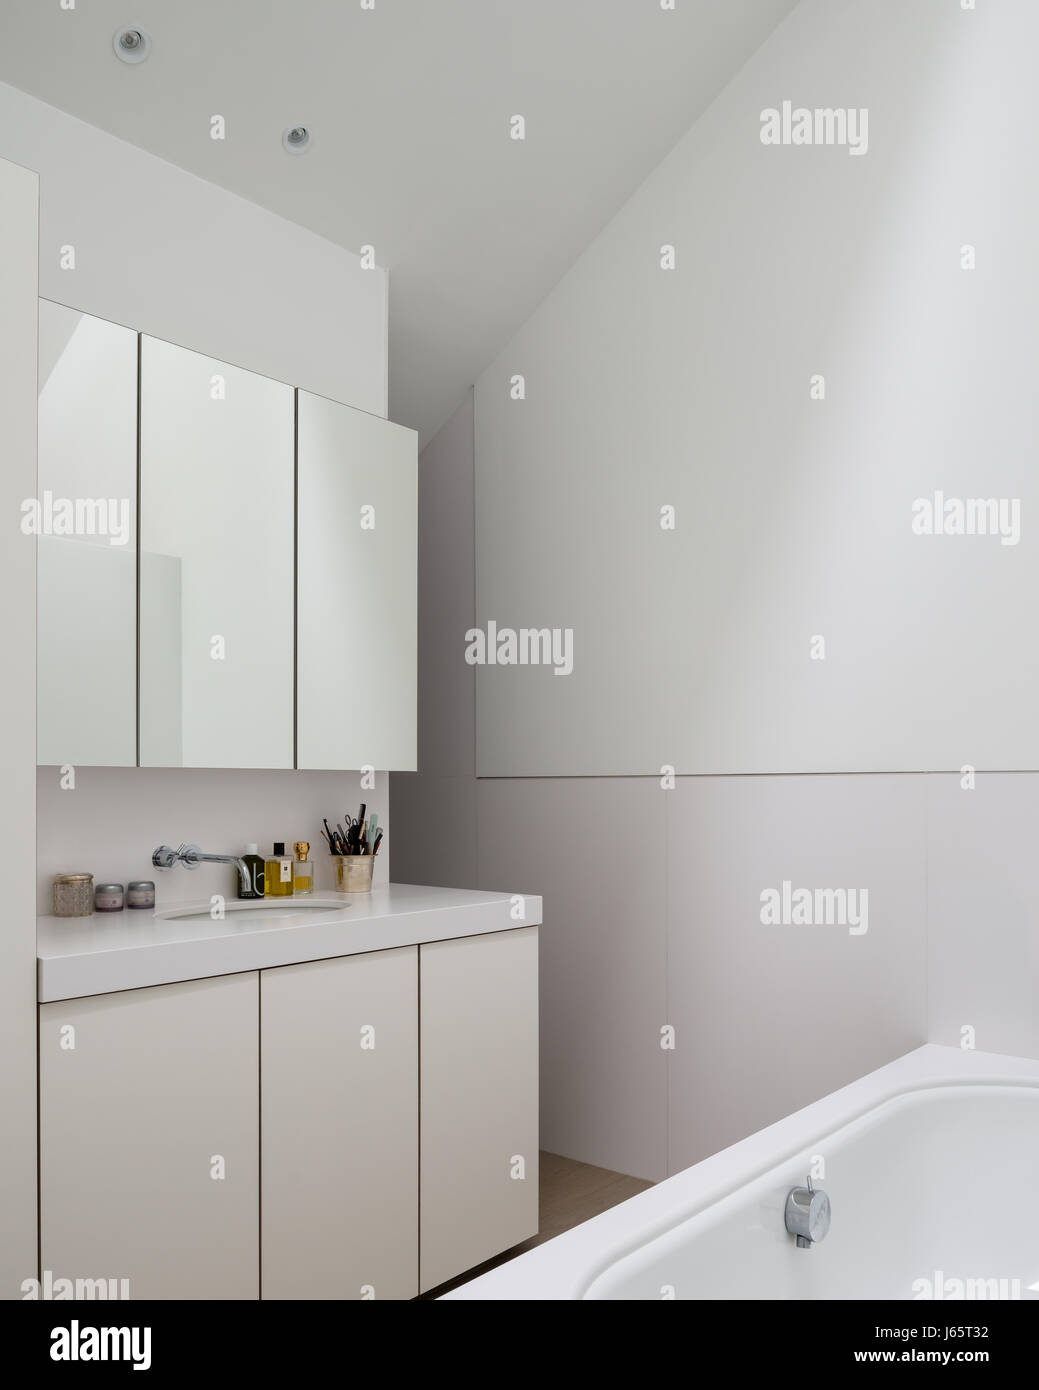 Mirrored cabinets above basin in pure white bathroom Stock Photo